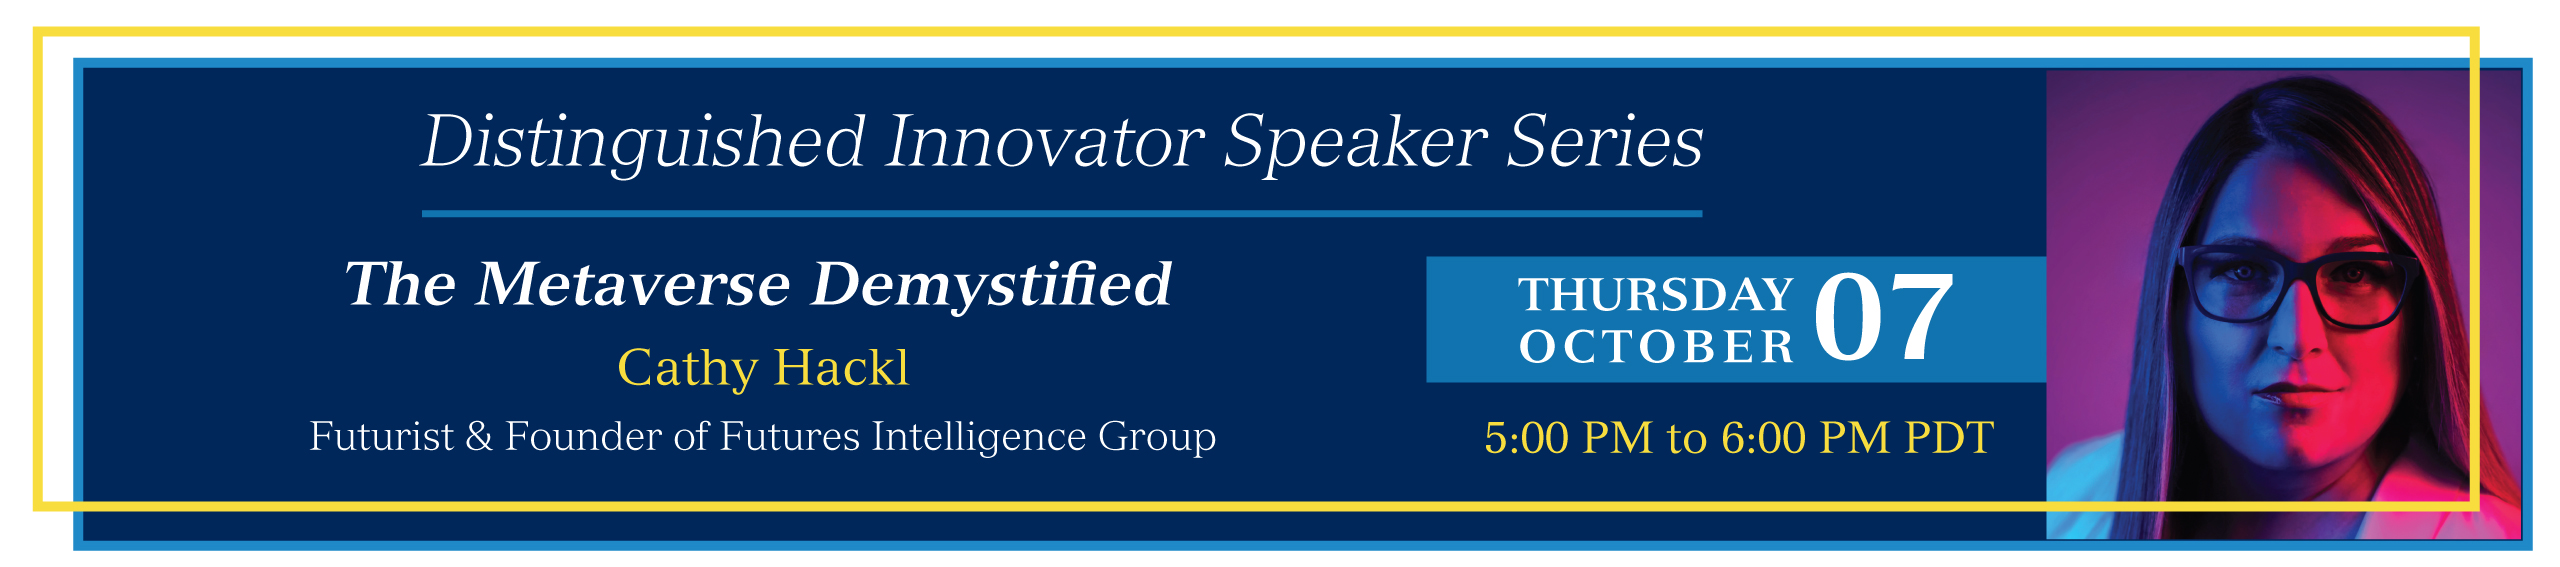 This is an image of our upcoming distinguished innovator speaker series speaker Cathy Hackl